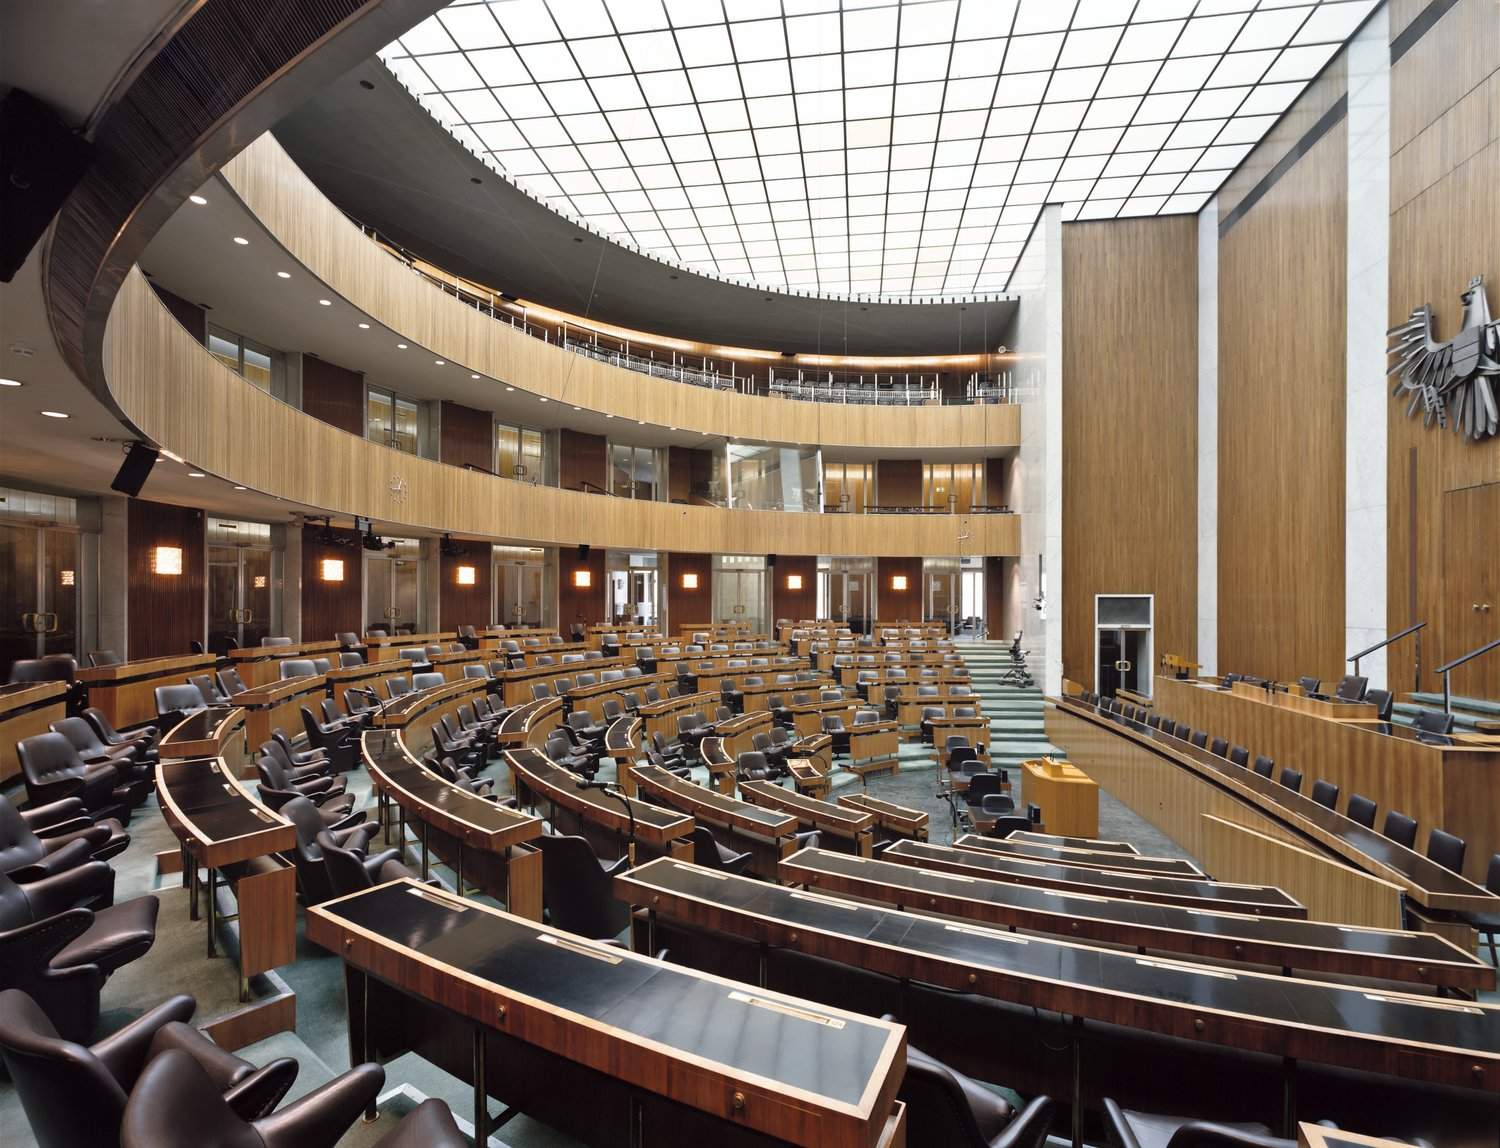 The Plenary Hall of the National Council Today. Parlamentsdirektion/ Stefan Olah